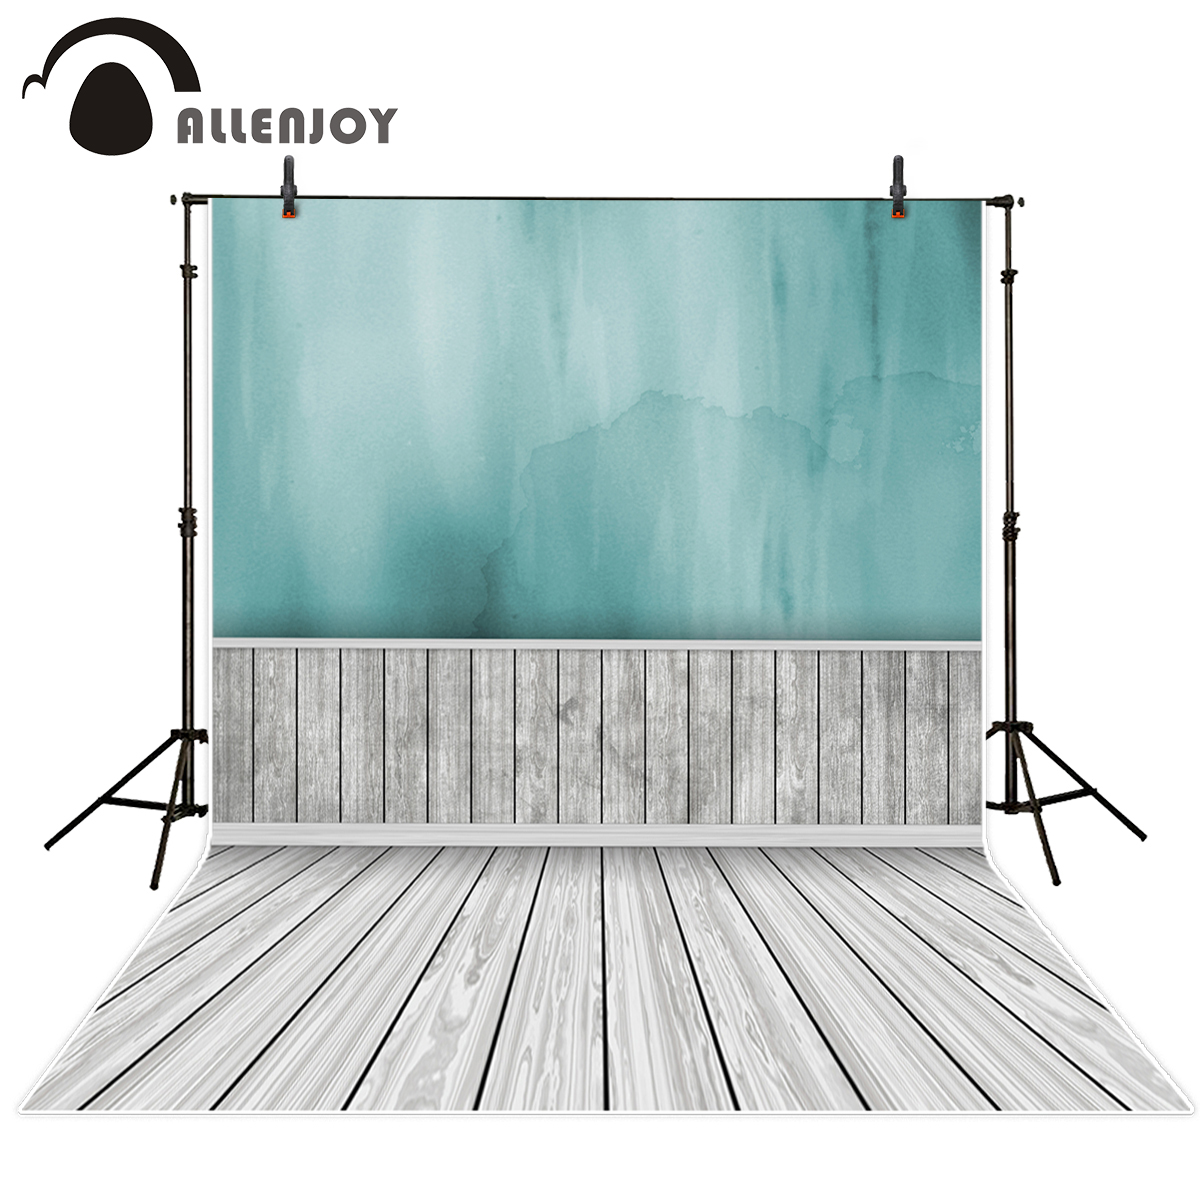 Allenjoy photographic background wooden floor ocean blue fade waterlogging Indoor vinyl backdrops for photography photo studio недорого